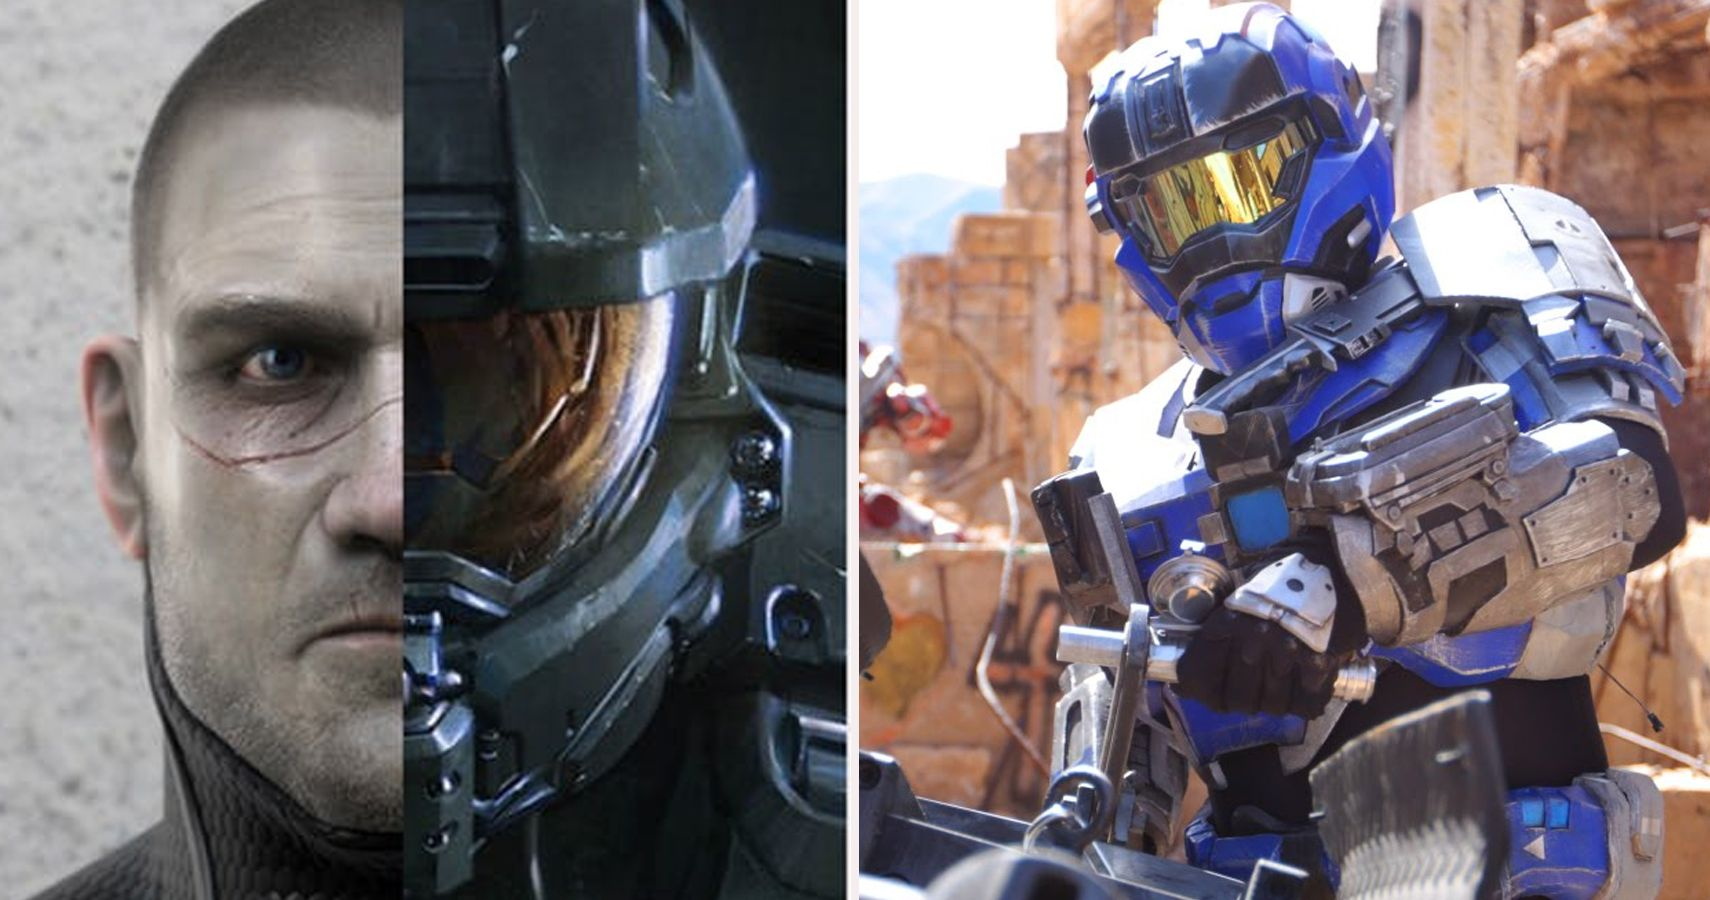 Current Halo 6 Rumors They Don't Want Fans To Know | TheGamer